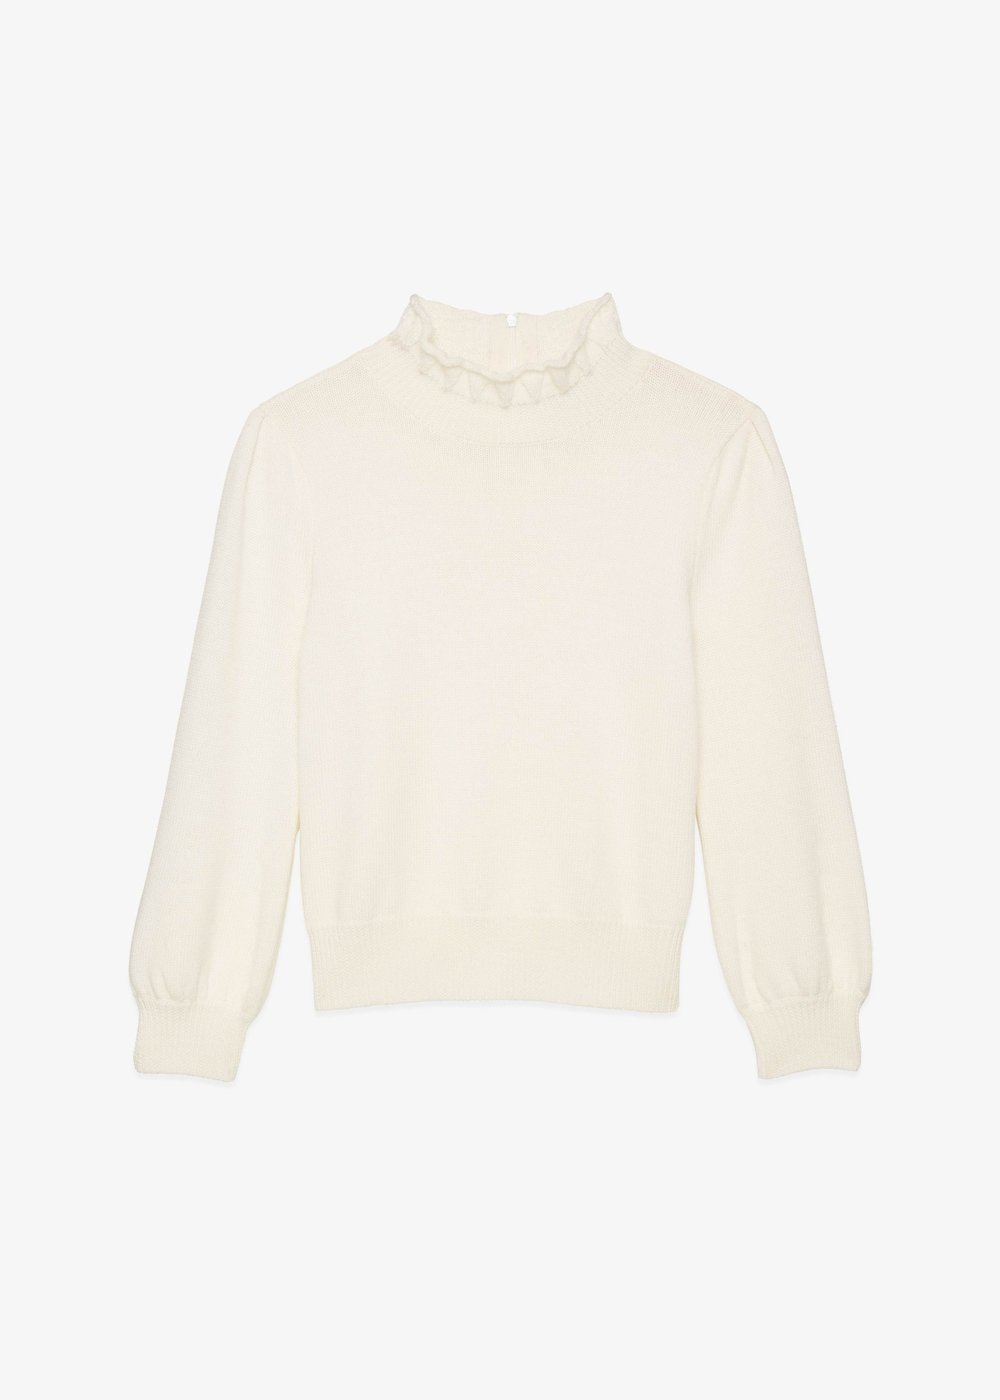 Co Sweater -